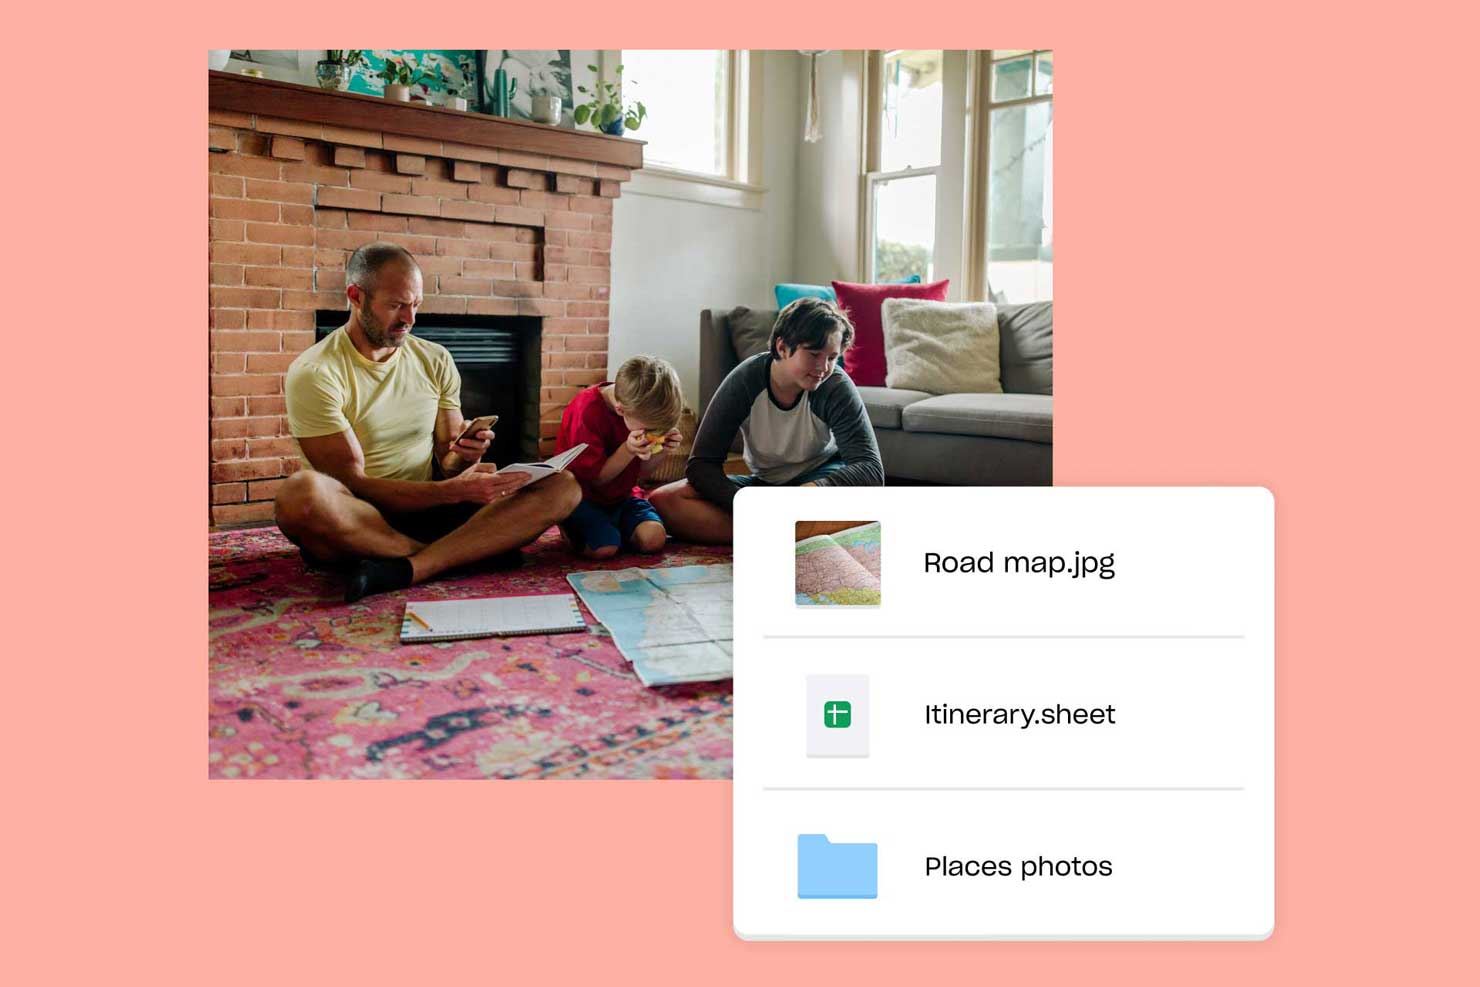 Father sitting on floor with two sons, map, and notepad, looking at travel-related files in Dropbox on phone